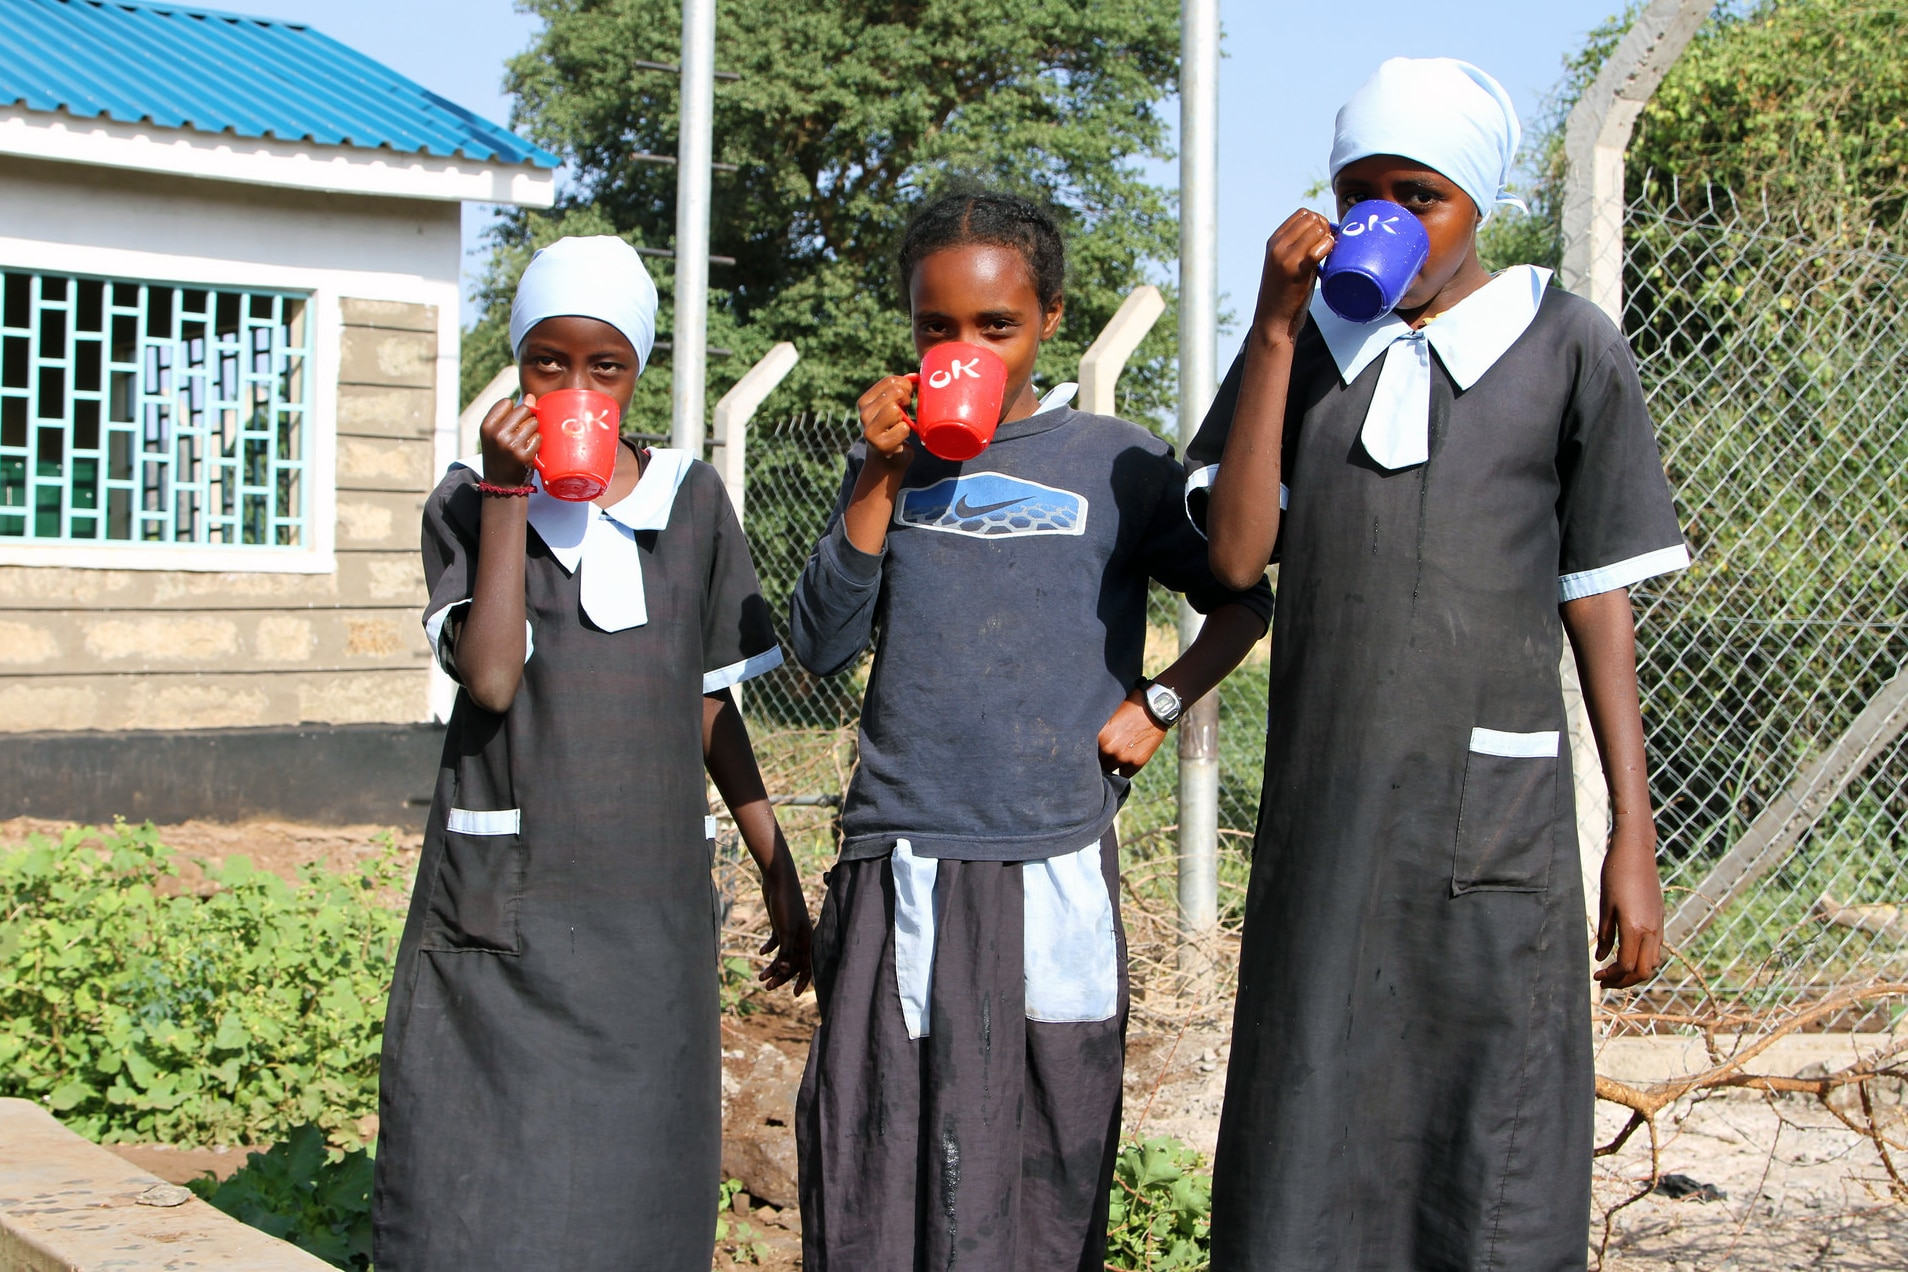 Three girls drinking water from mugs; vegetable garden and building in background (USAID)